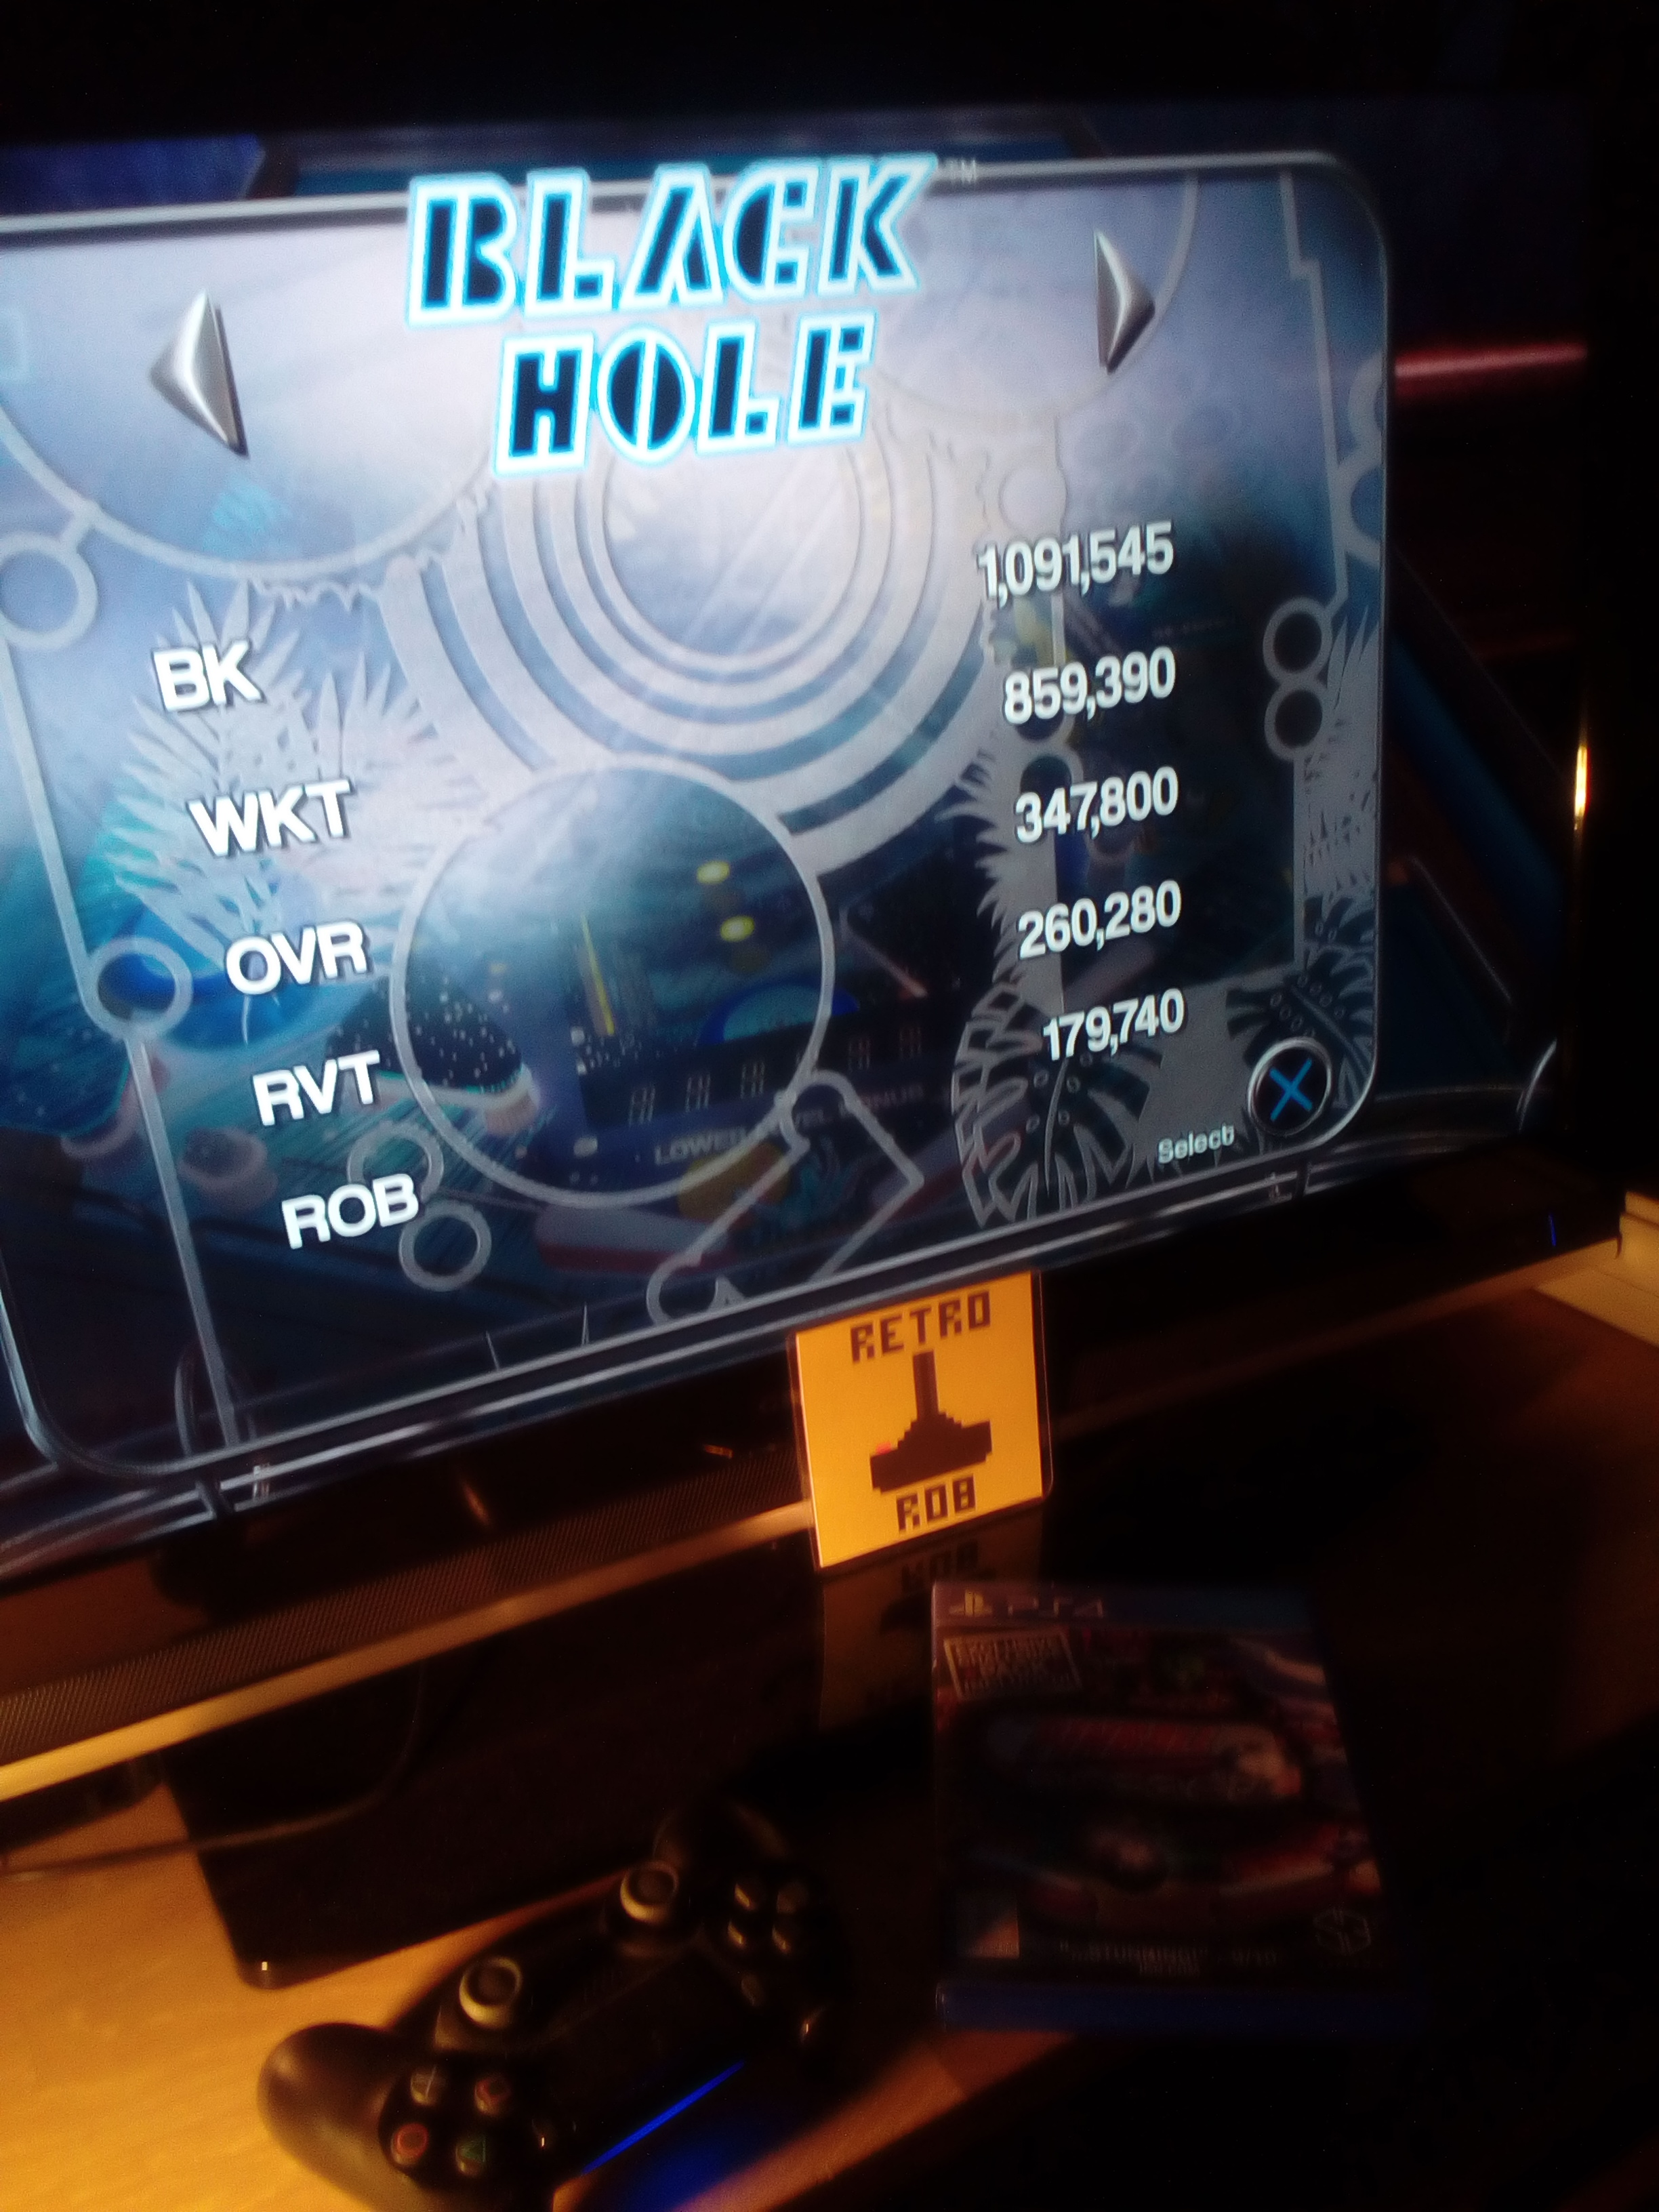 RetroRob: Pinball Arcade: Black Hole (Playstation 4) 179,740 points on 2019-08-07 13:57:39